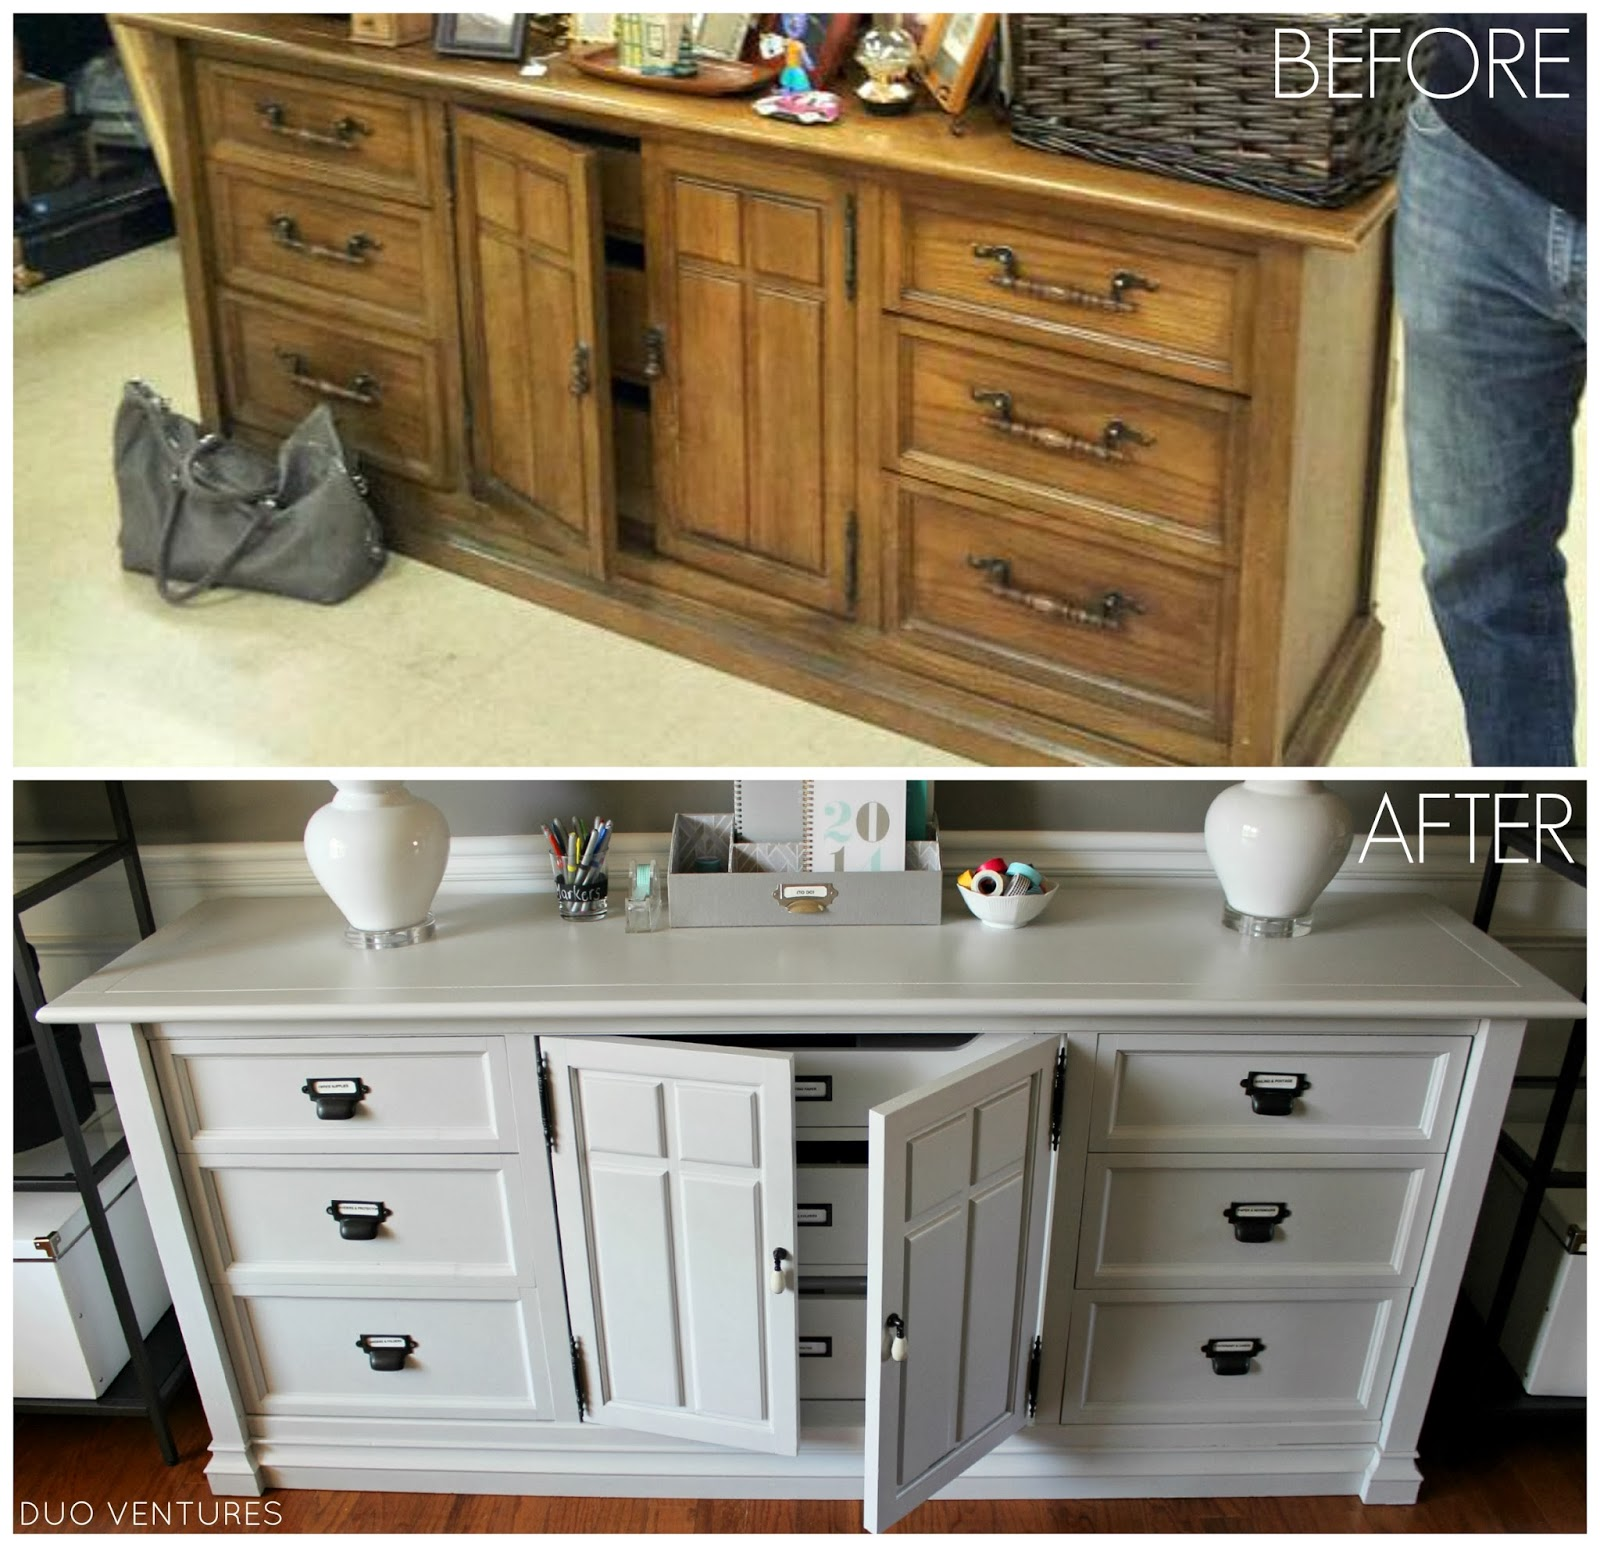 Before And After Merging Two Rooms Has Created A Super: Duo Ventures: Thriftstore Dresser: Labels